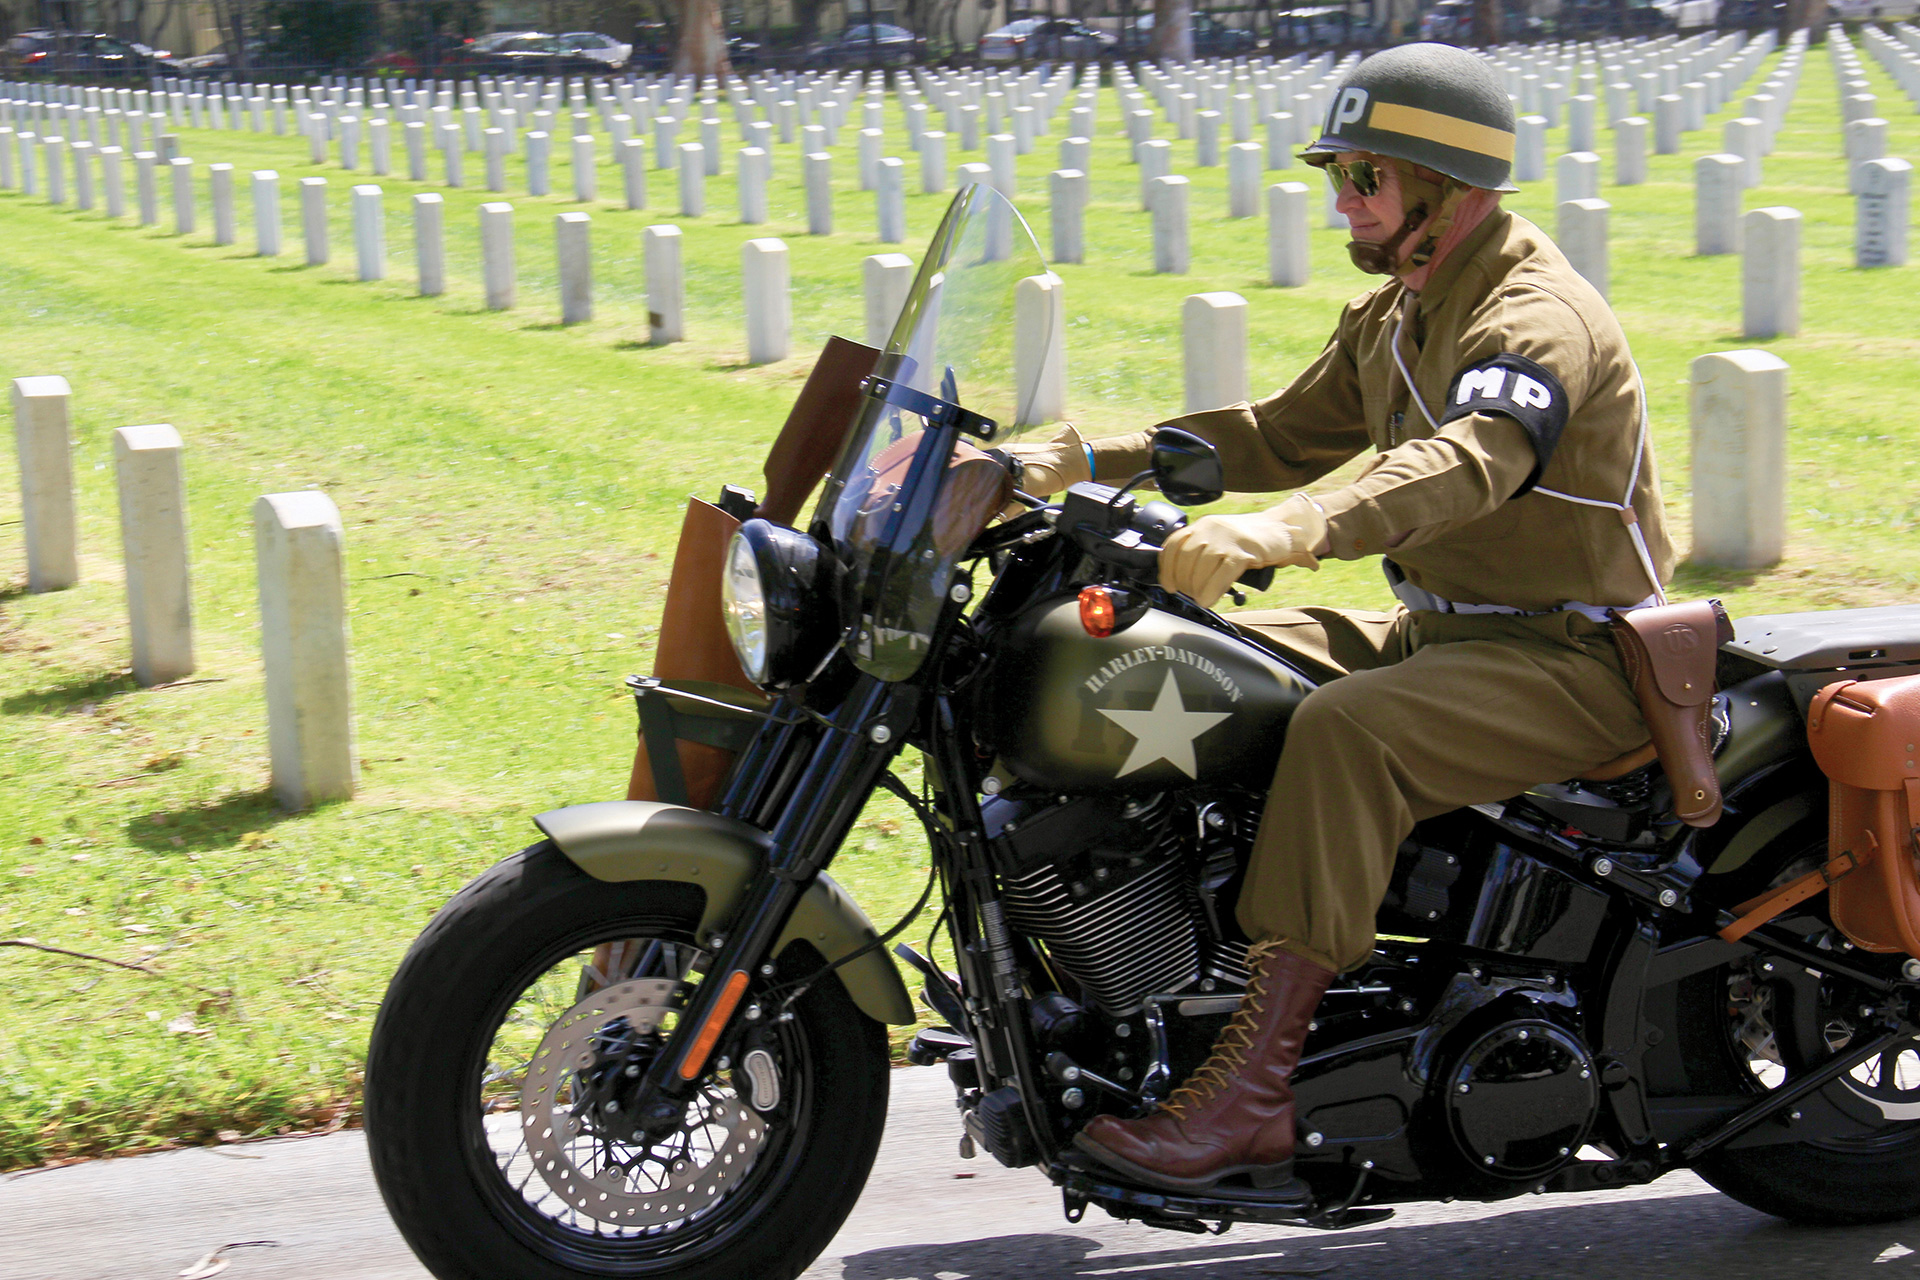 scenes-from-the-6th-annual-heroes-ride-10